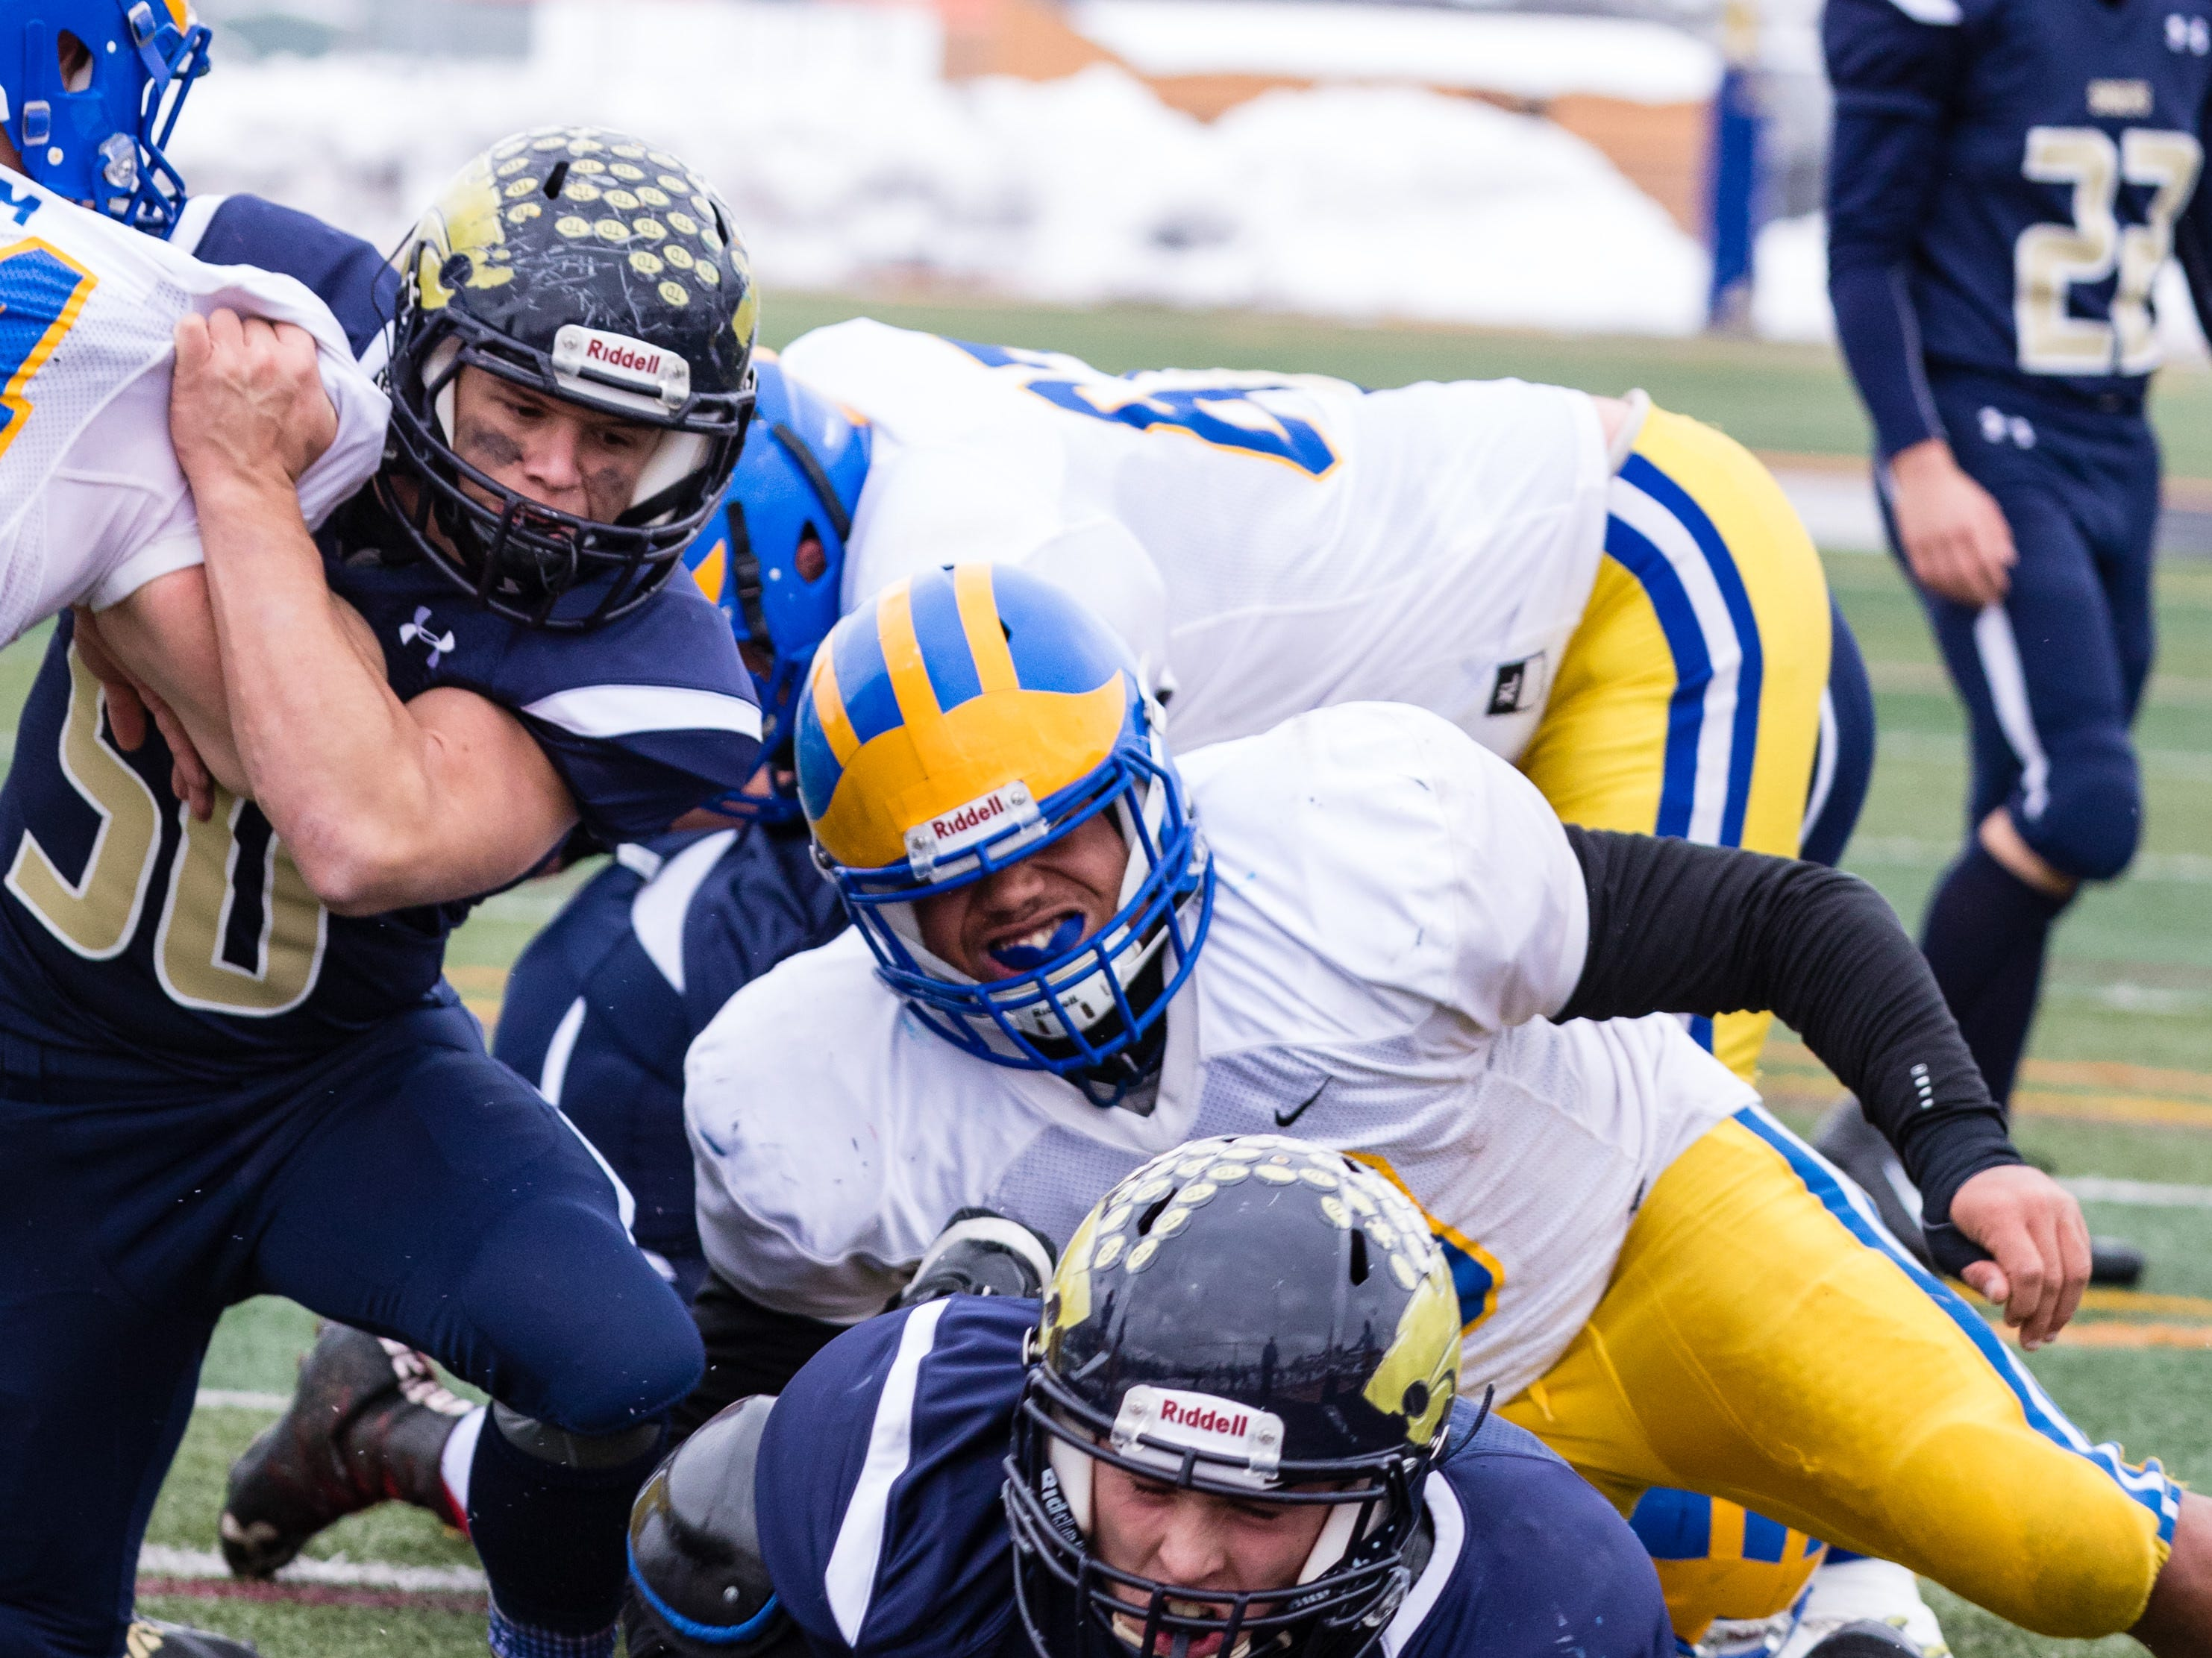 Action from Susquehanna Valley's 21-20 victory over Cleveland Hill in the Class C state semifinal on Saturday, November 17 at Union-Endicott.